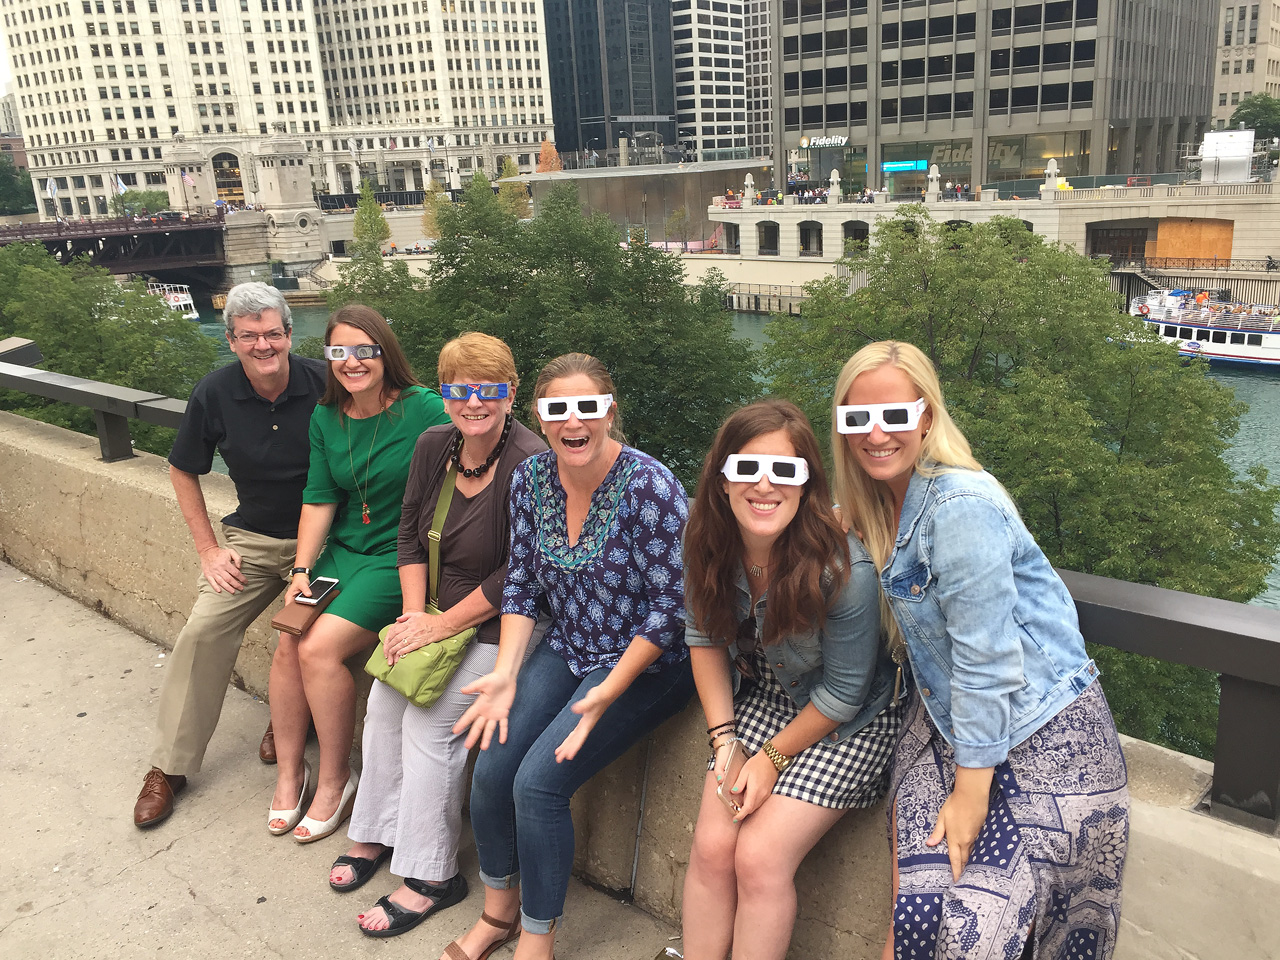 Solar Eclipse Viewing on the chicago river